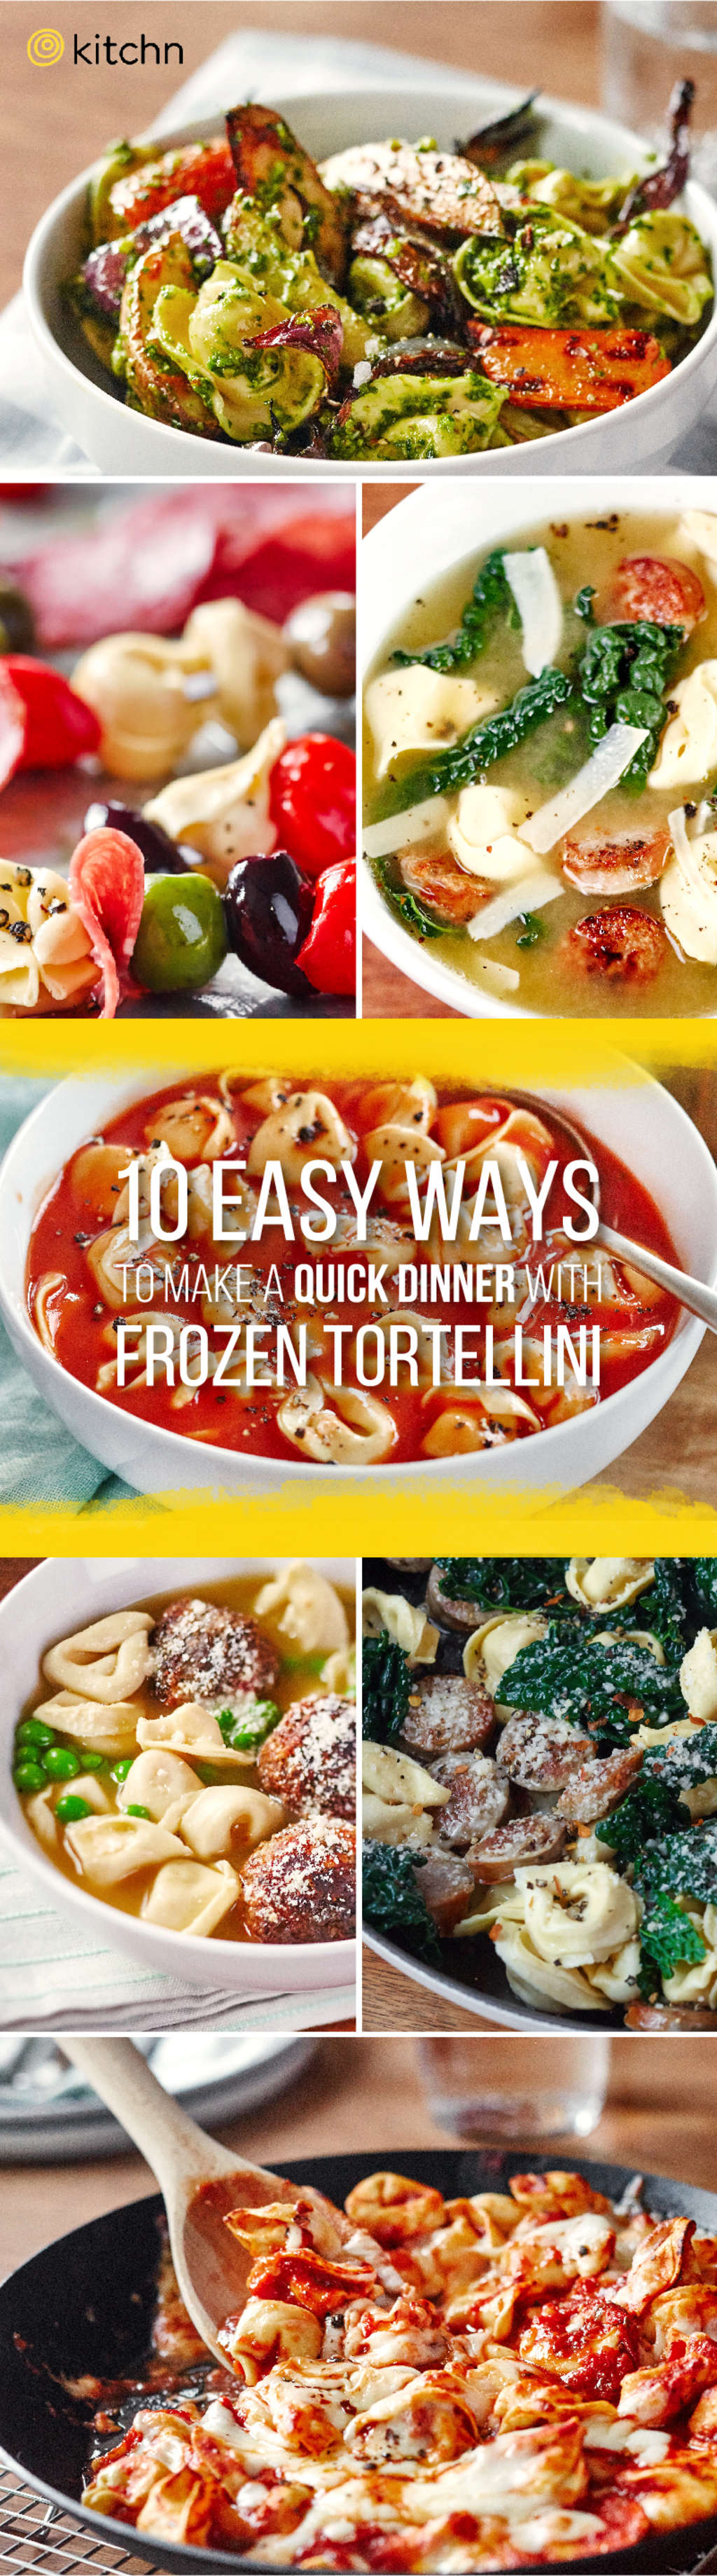 10 Easy Ways to Turn Frozen Tortellini Into a Quick Dinner